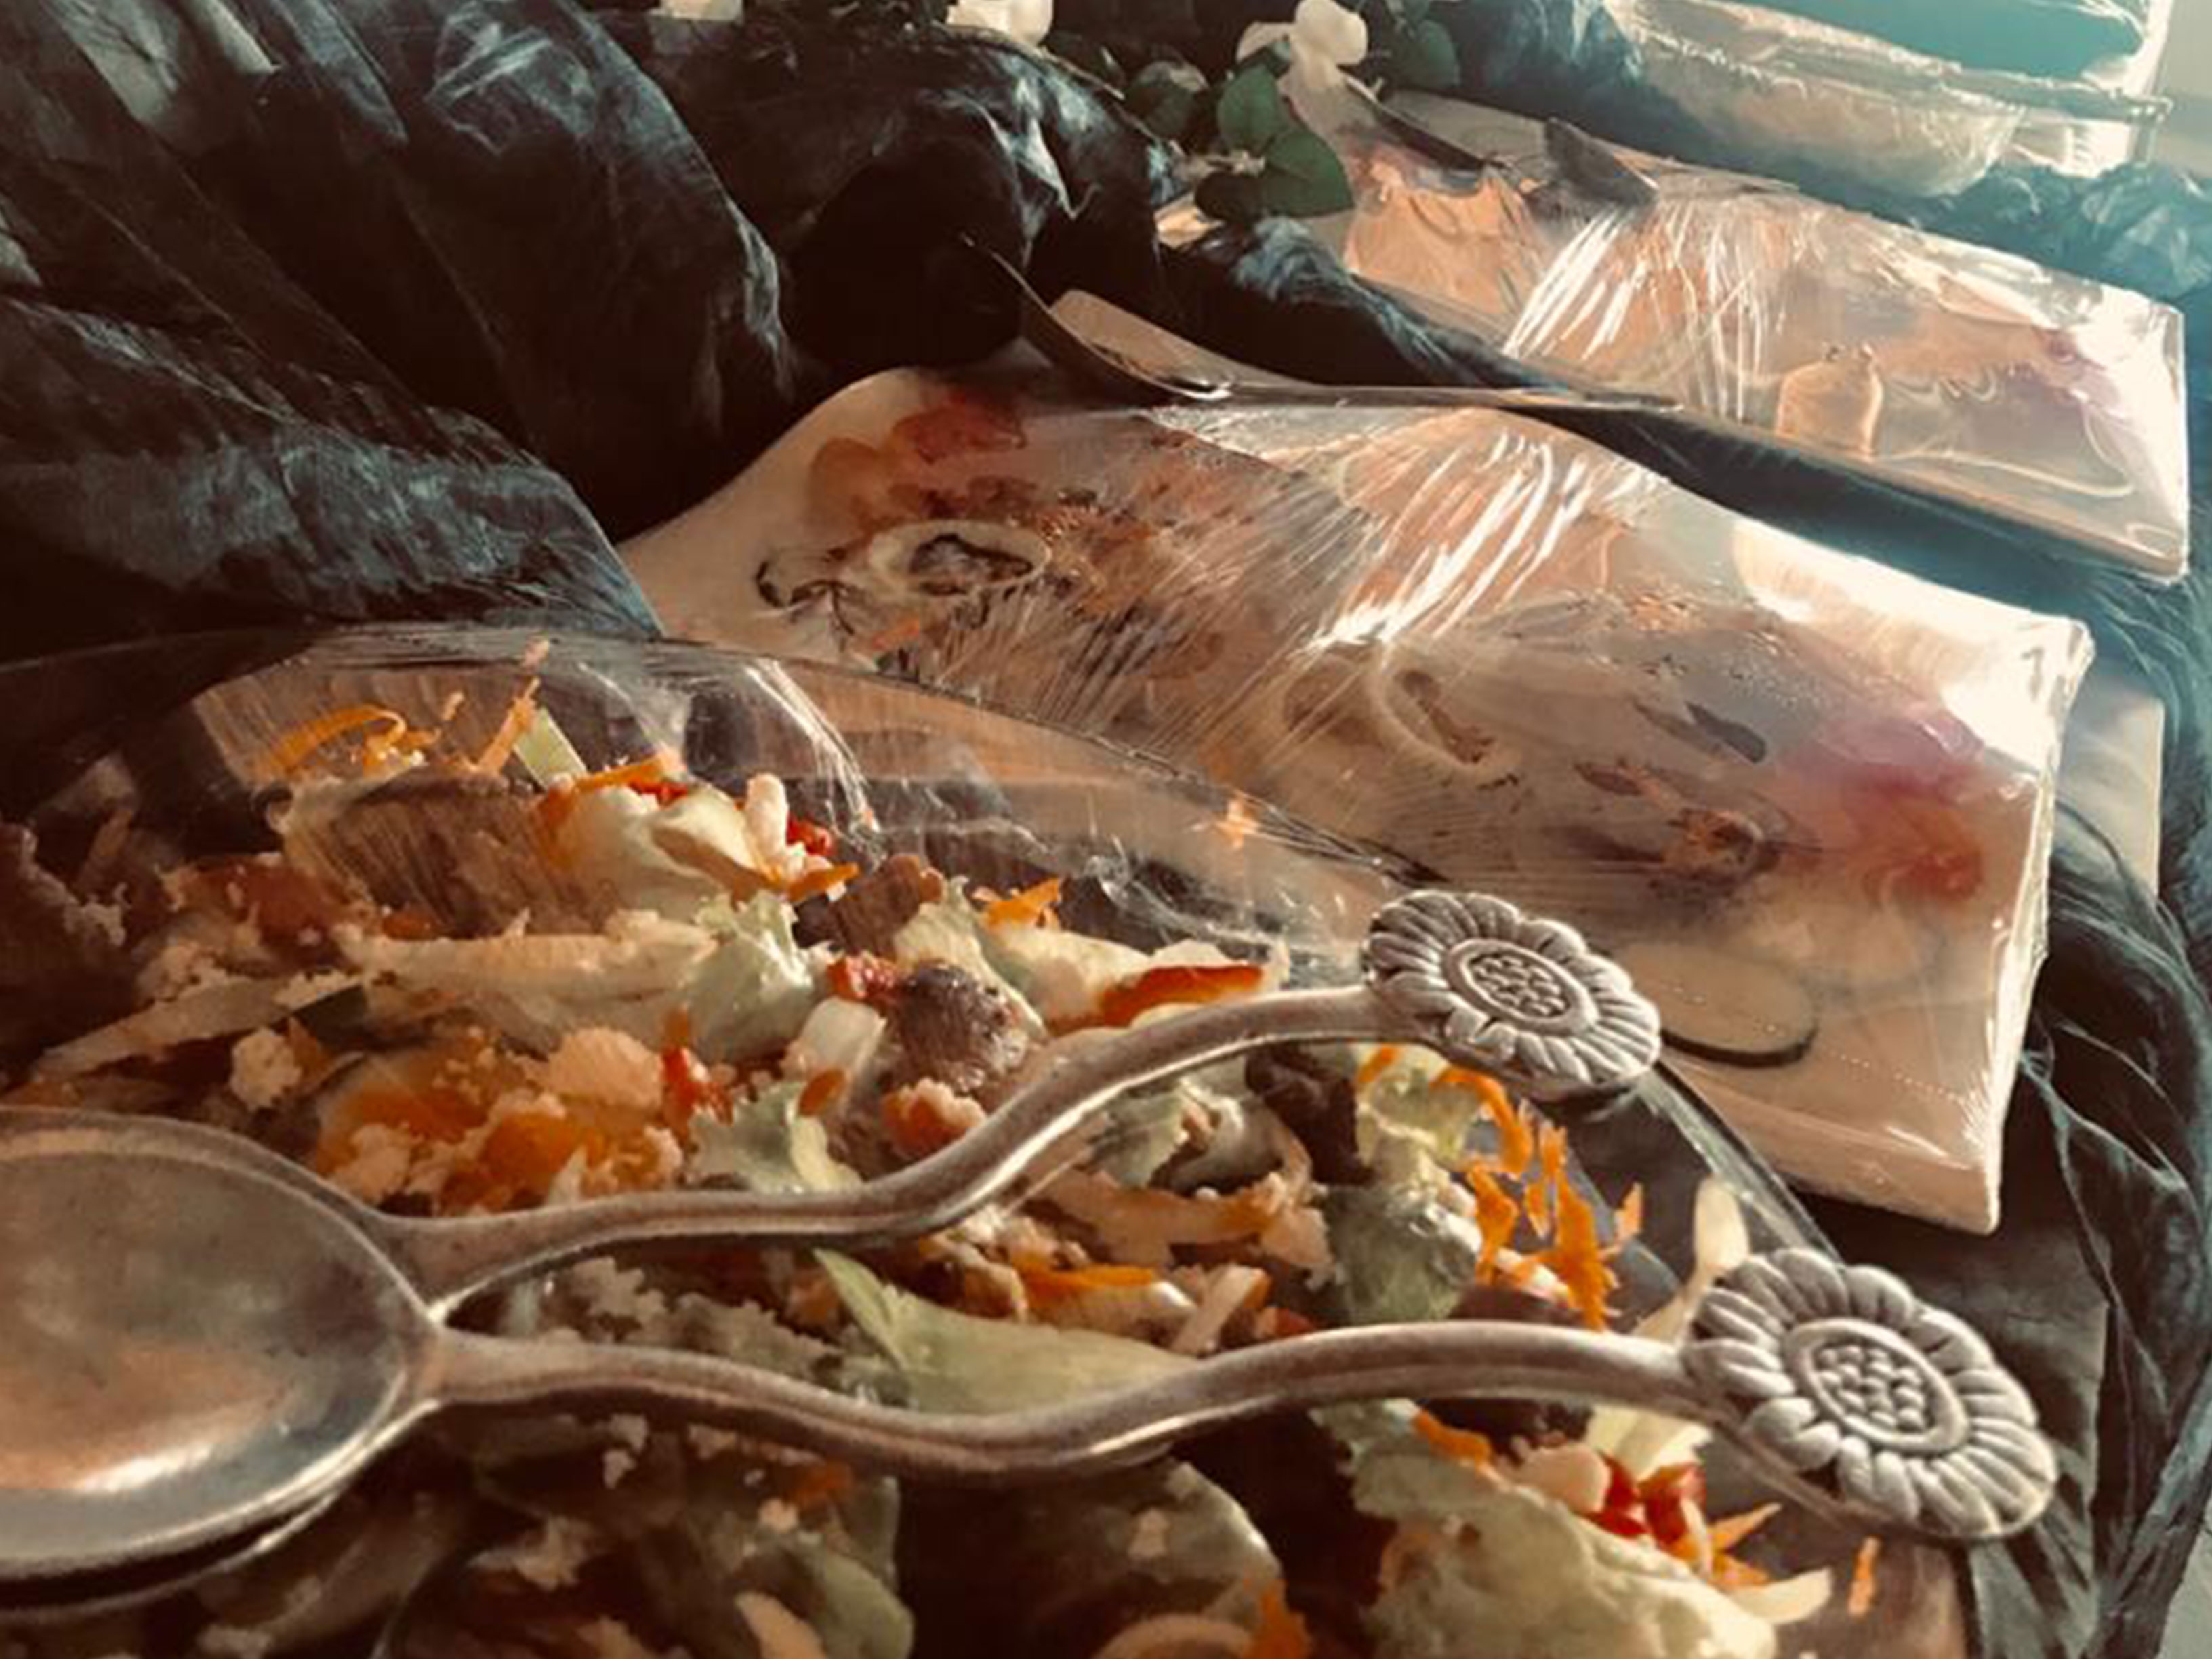 Full catering for groups over 10 guests is available on request. We work with tiered pricing to provide menus tailored for all budgets. Please contact Jo on  263773109334 and discuss your specific requirements.